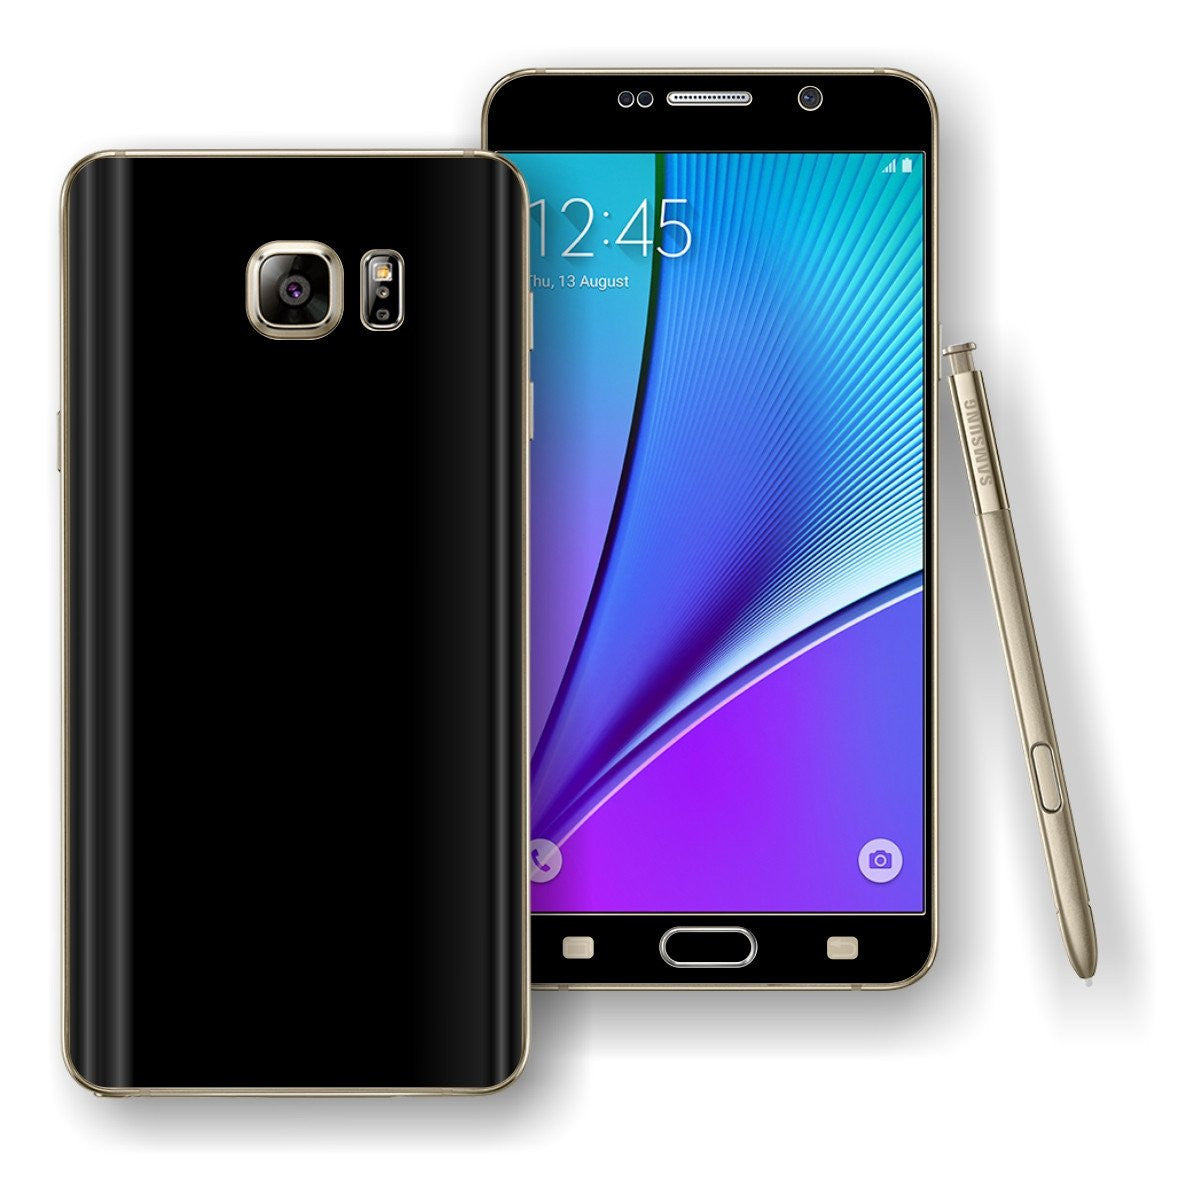 Samsung Galaxy NOTE 5 Black Glossy Skin Wrap Decal Cover Protector by EasySkinz